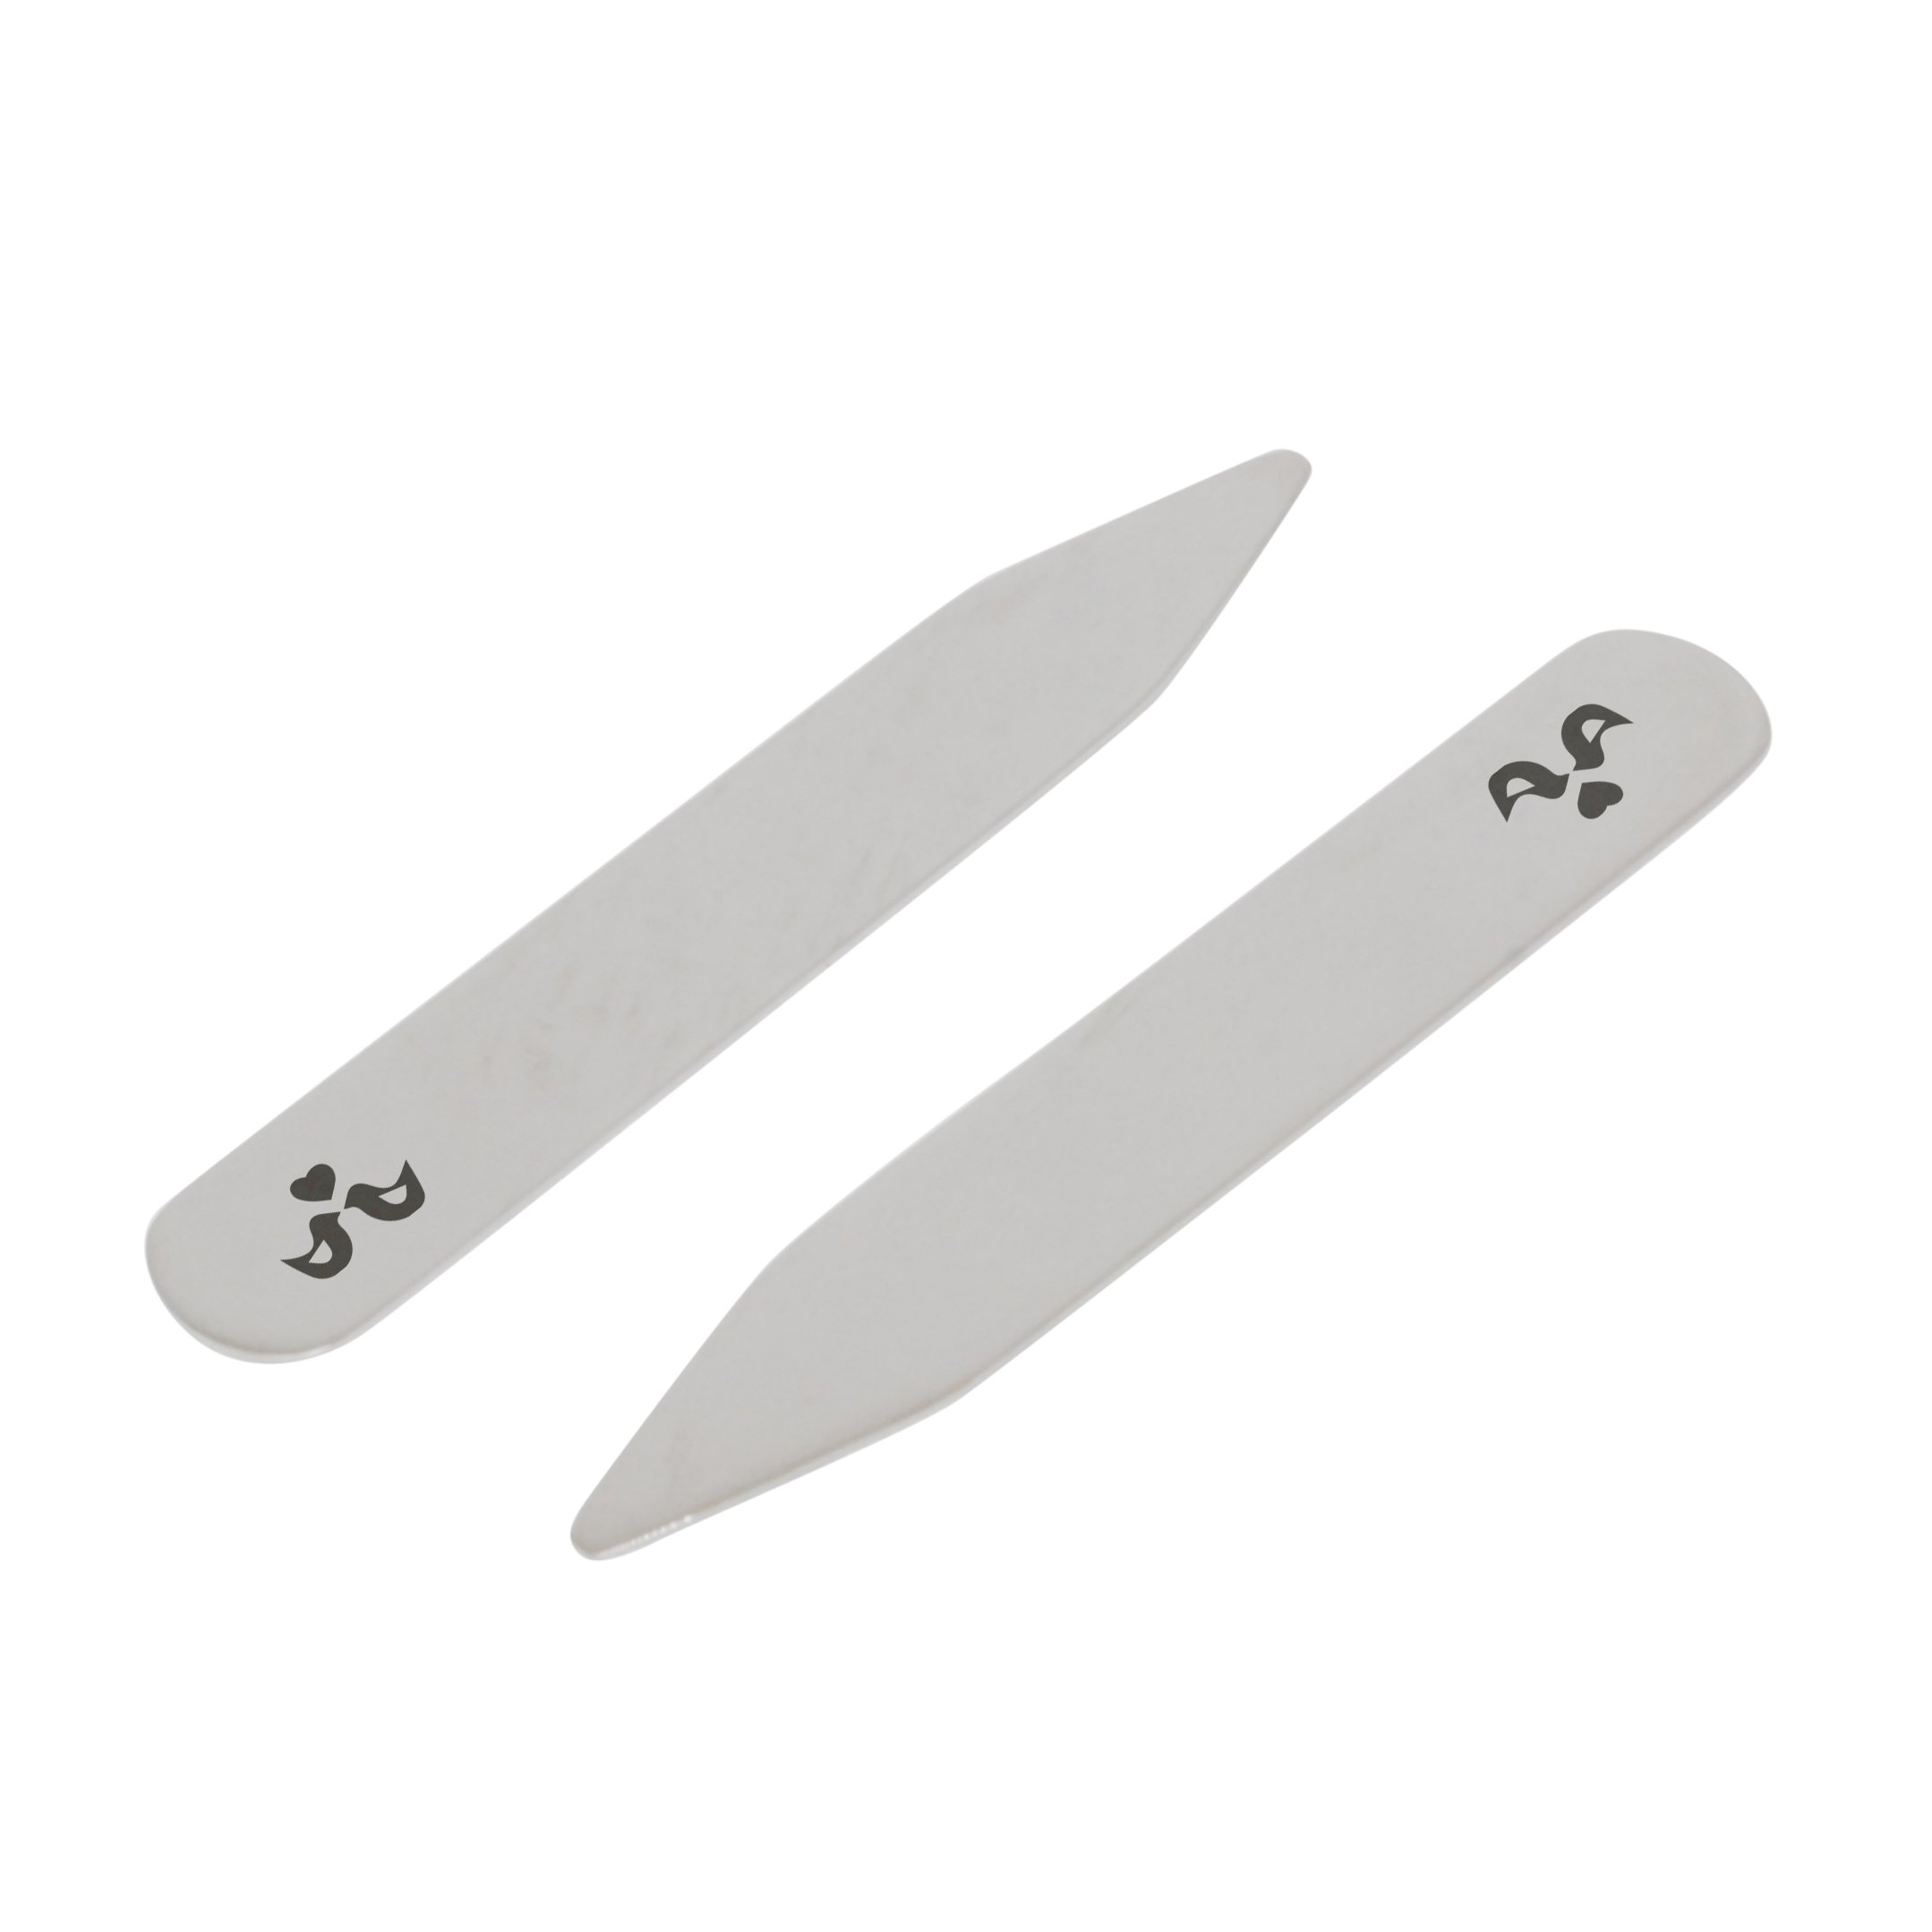 MODERN GOODS SHOP Stainless Steel Collar Stays With Laser Engraved Love Birds Design - 2.5 Inch Metal Collar Stiffeners - Made In USA